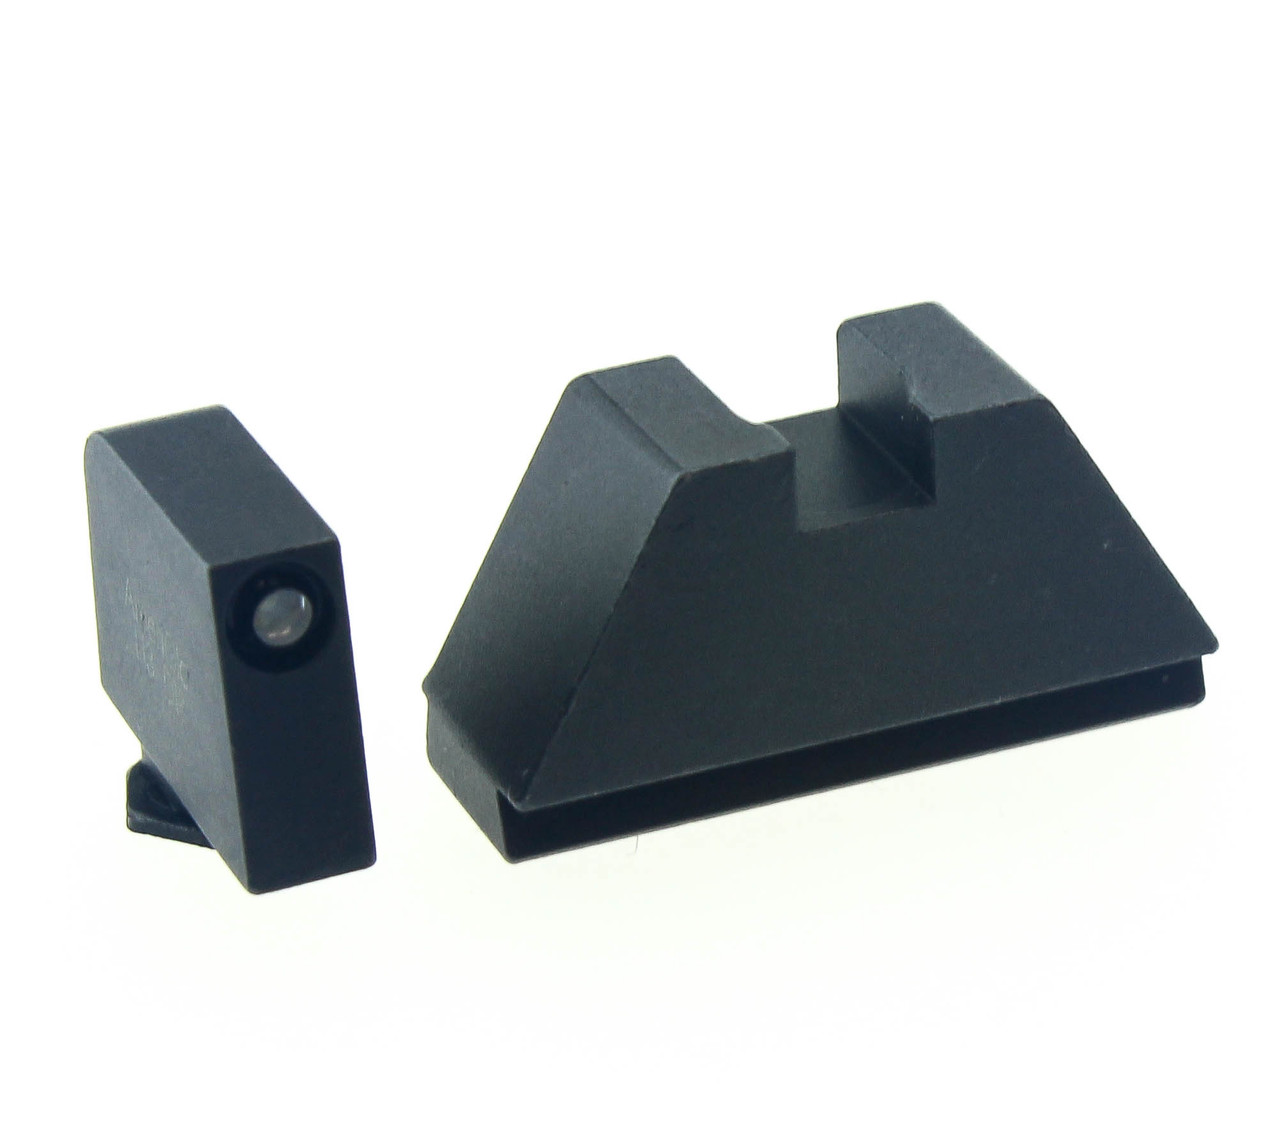 Ameriglo GL-809 Suppressor Height Sight for Glock